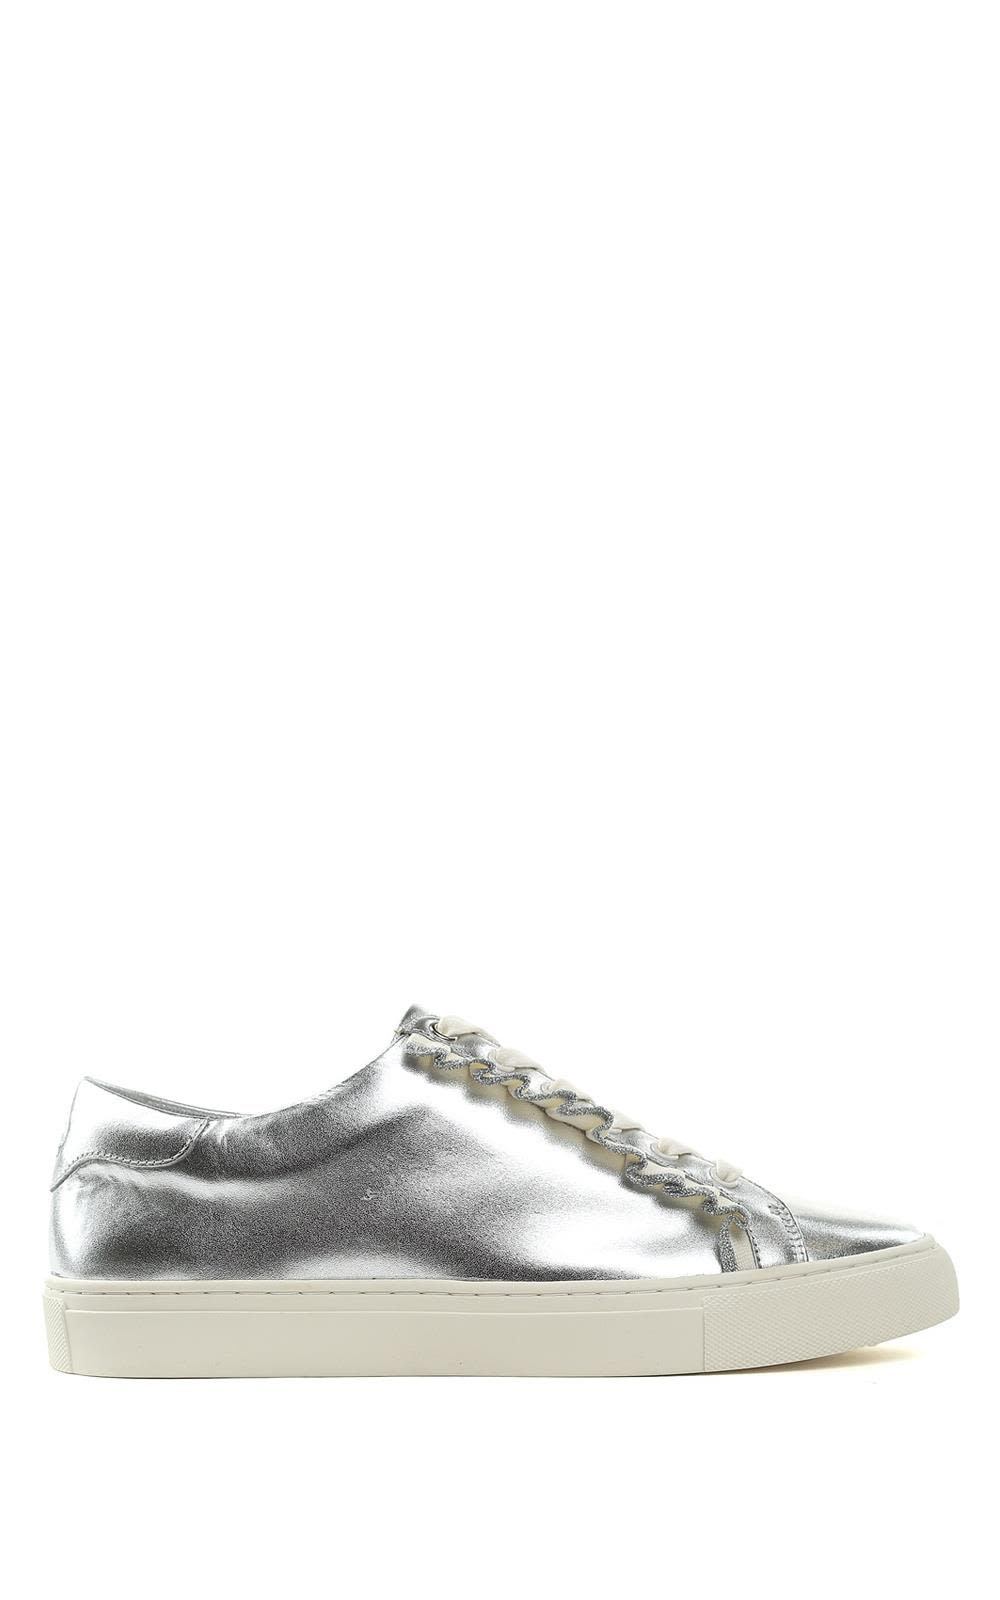 Tory Burch Tory Sport Ruffle-trim Laminated-leather Sneakers